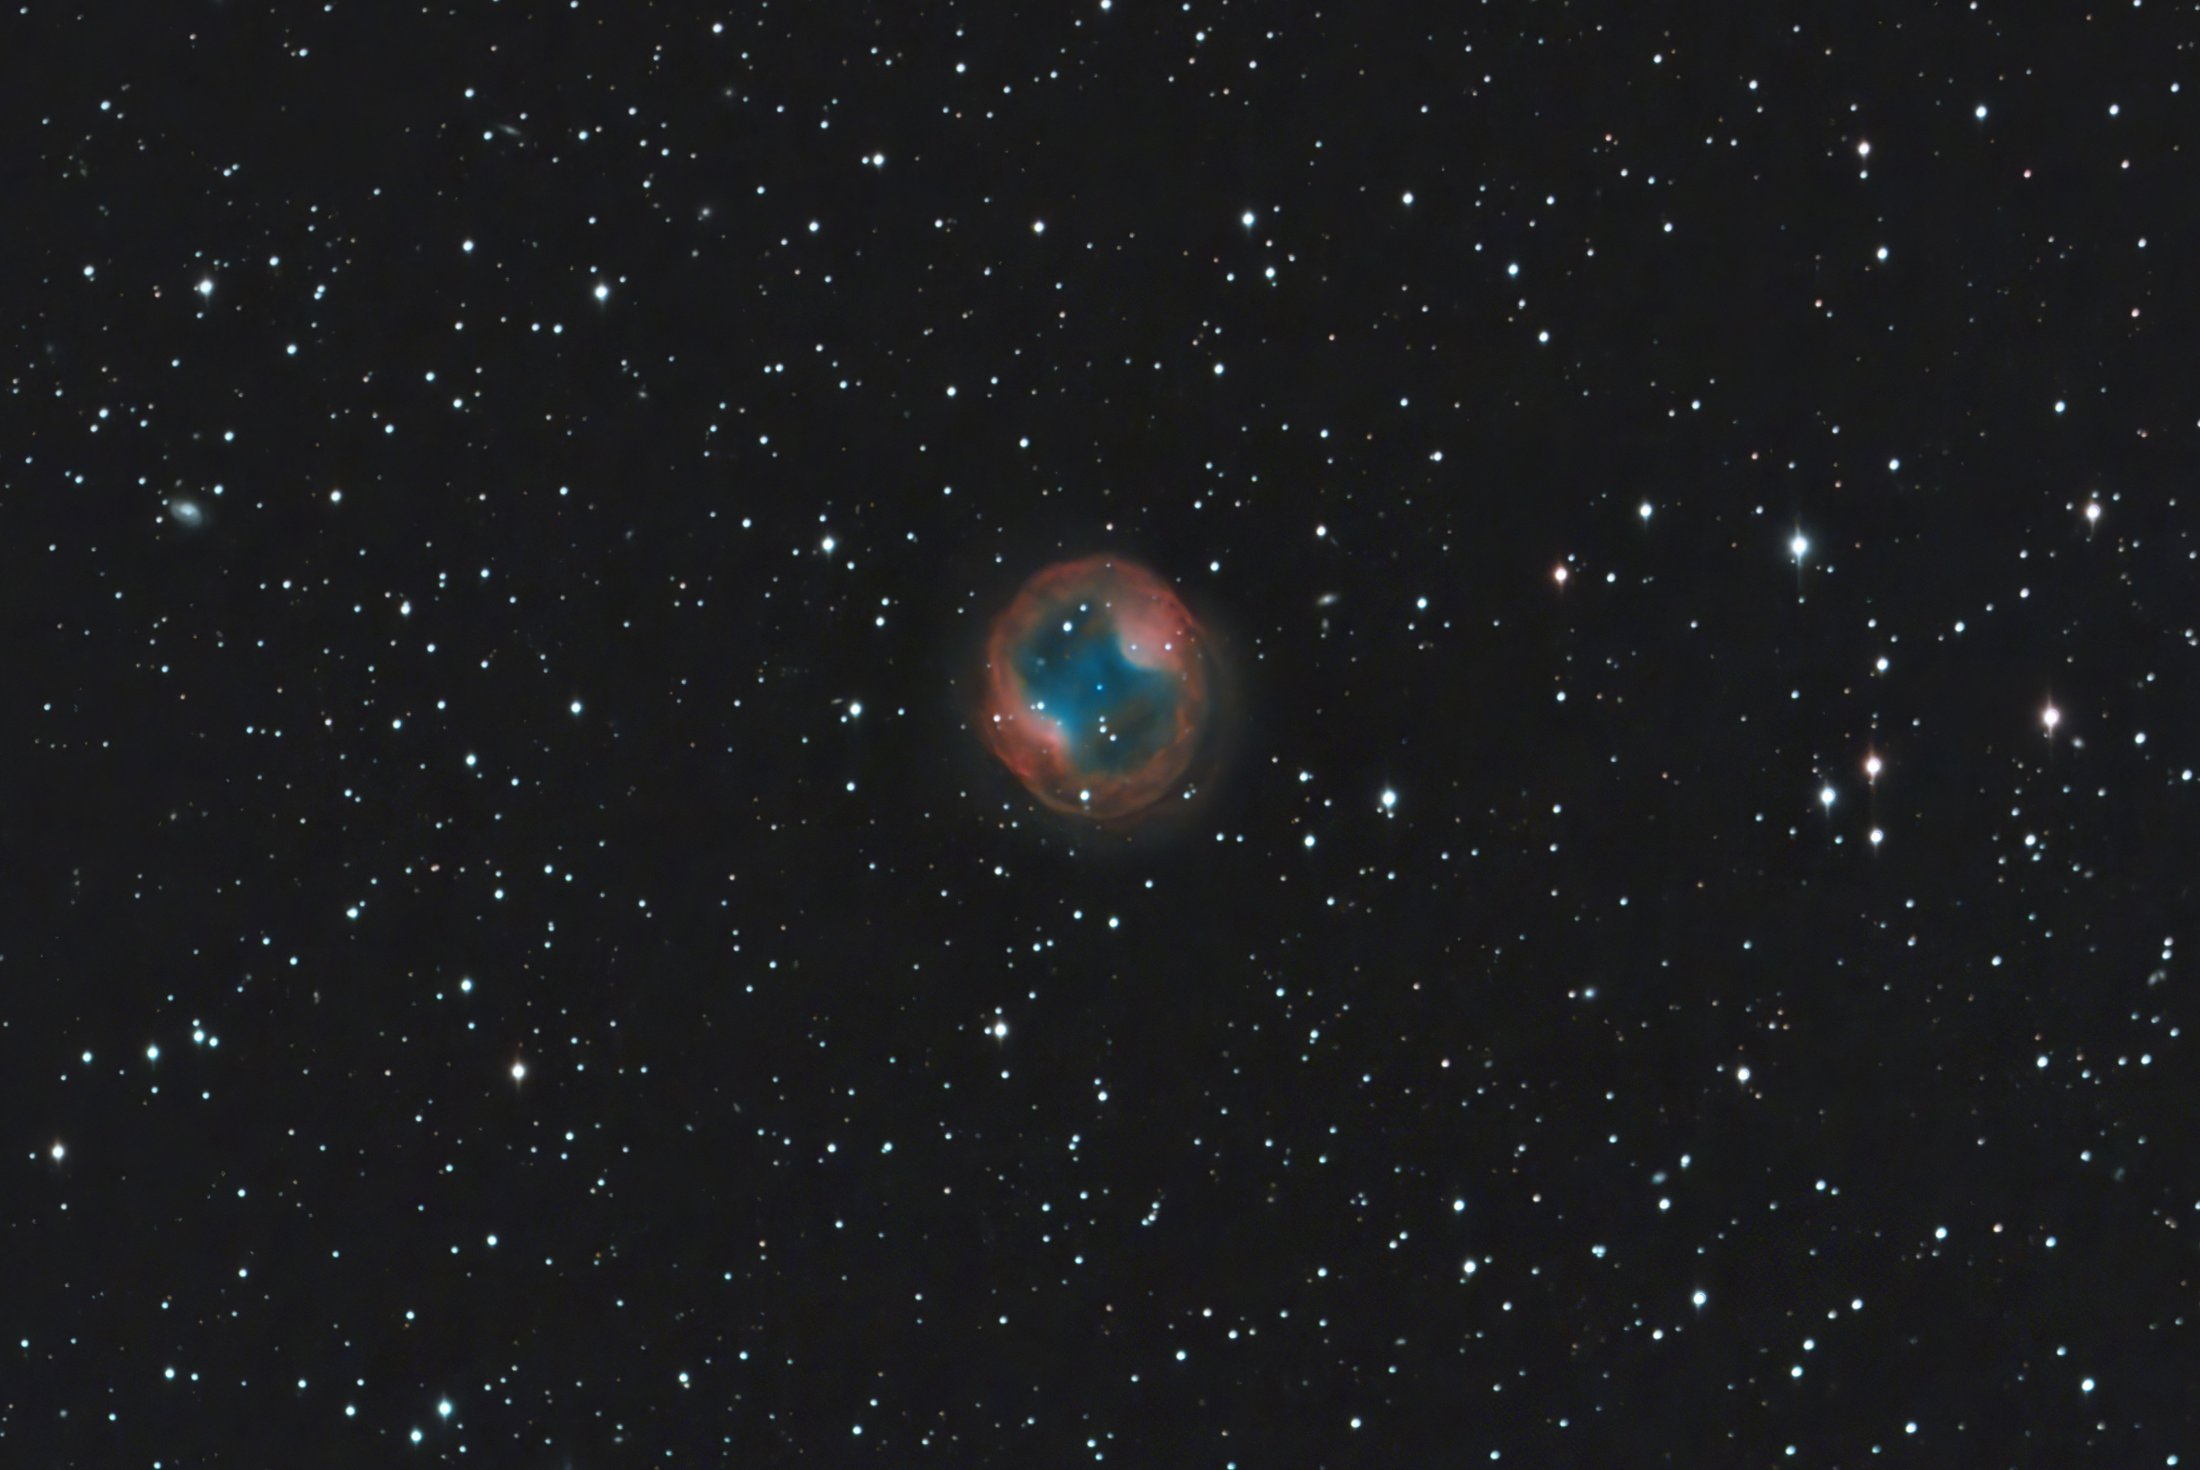 Jones Emerson 1 planetary nebula